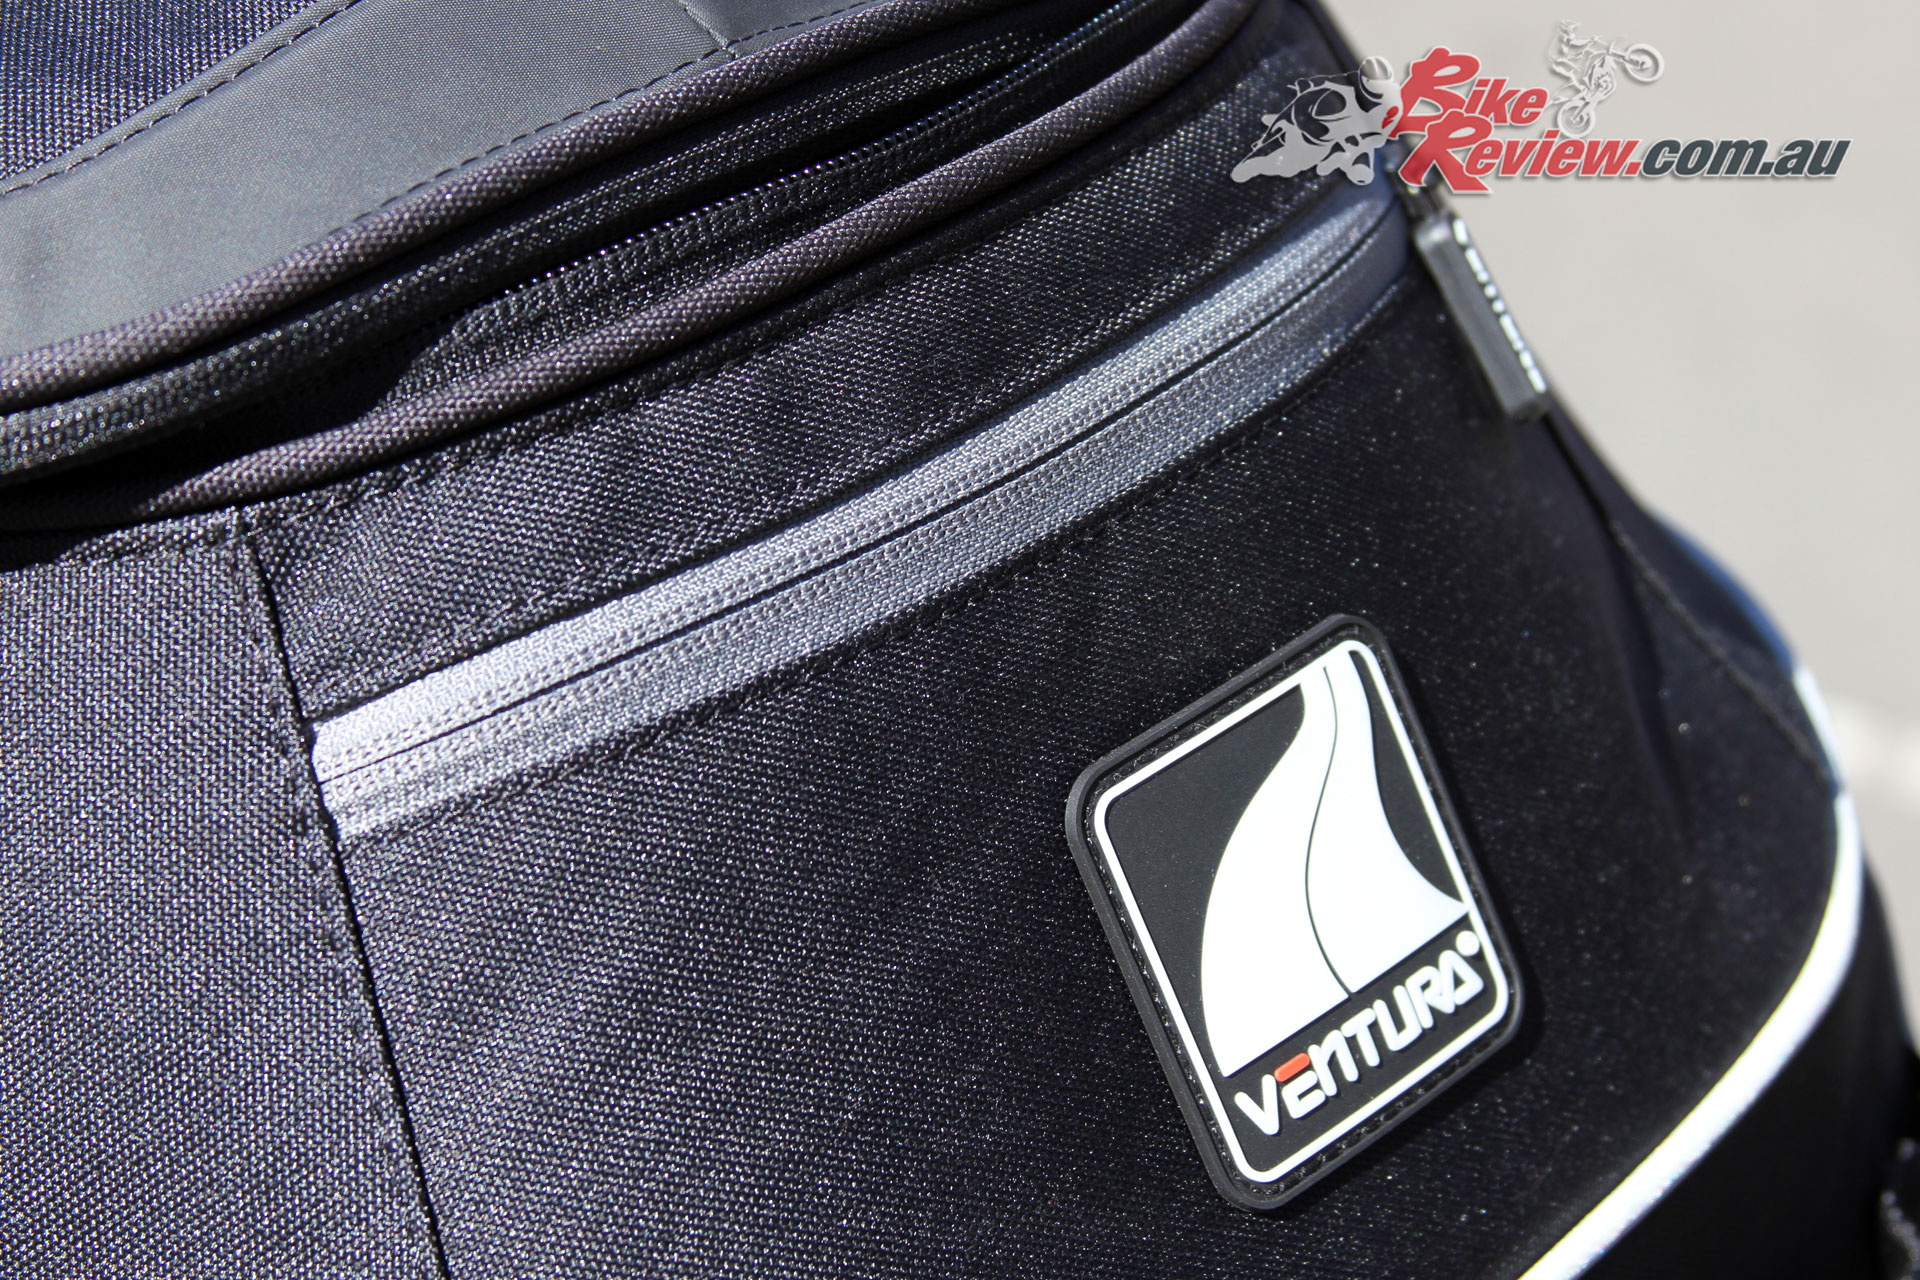 A rear pocket offers easy storage and access to small items on the EVO-22 bag